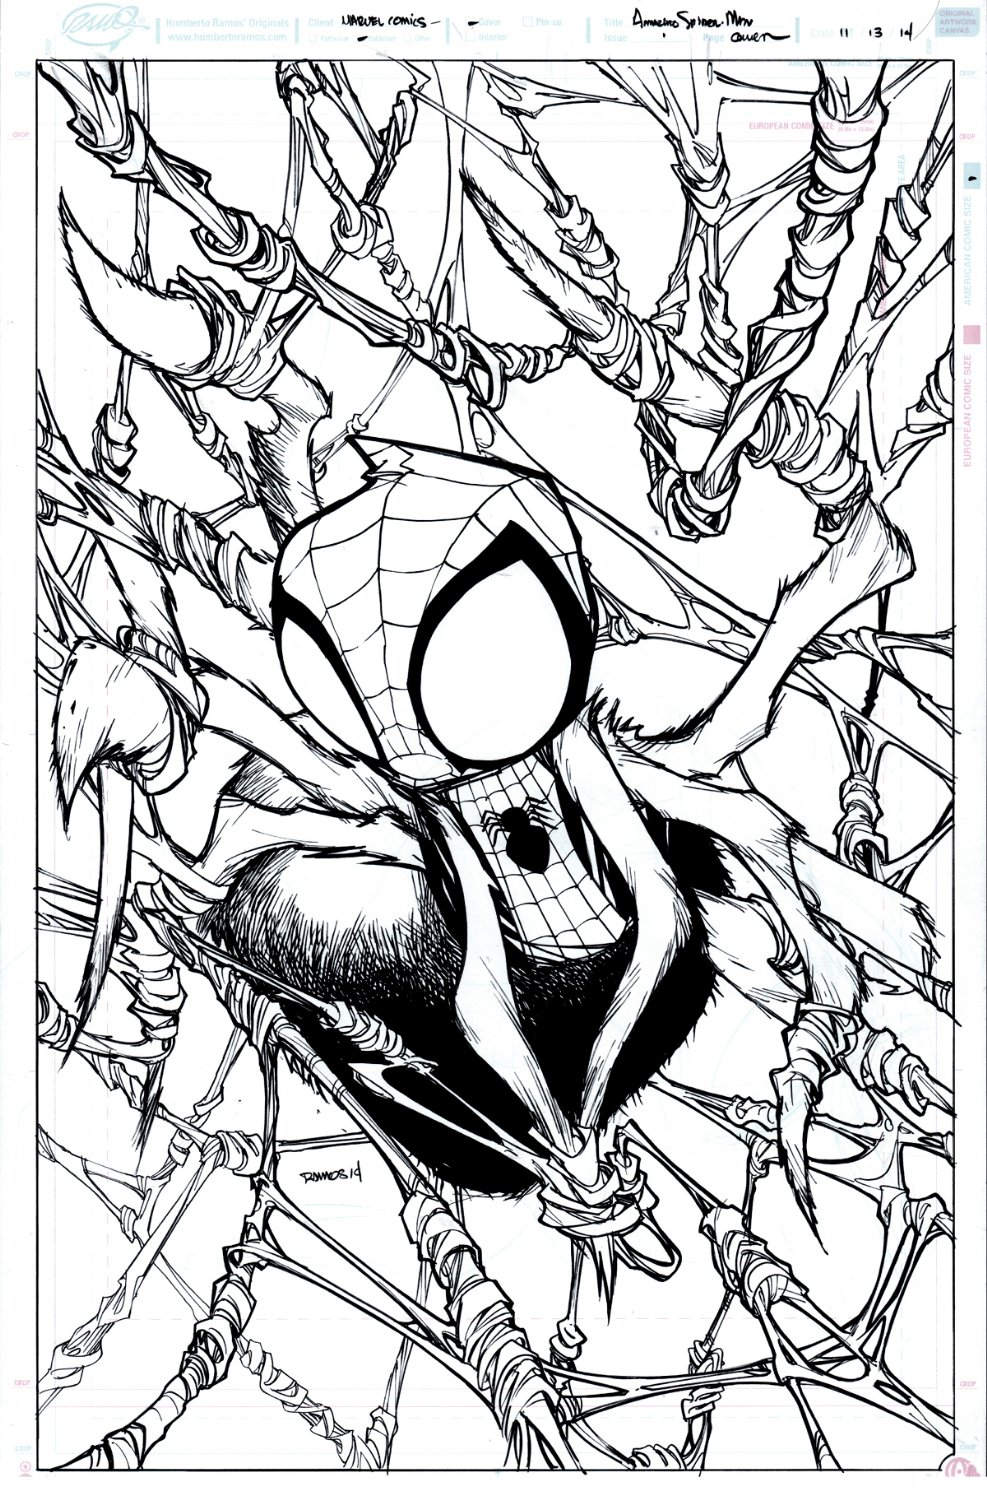 SPIDER-MAN UNPUBLISHED COVER.....Published In Ramos Book!) 2014